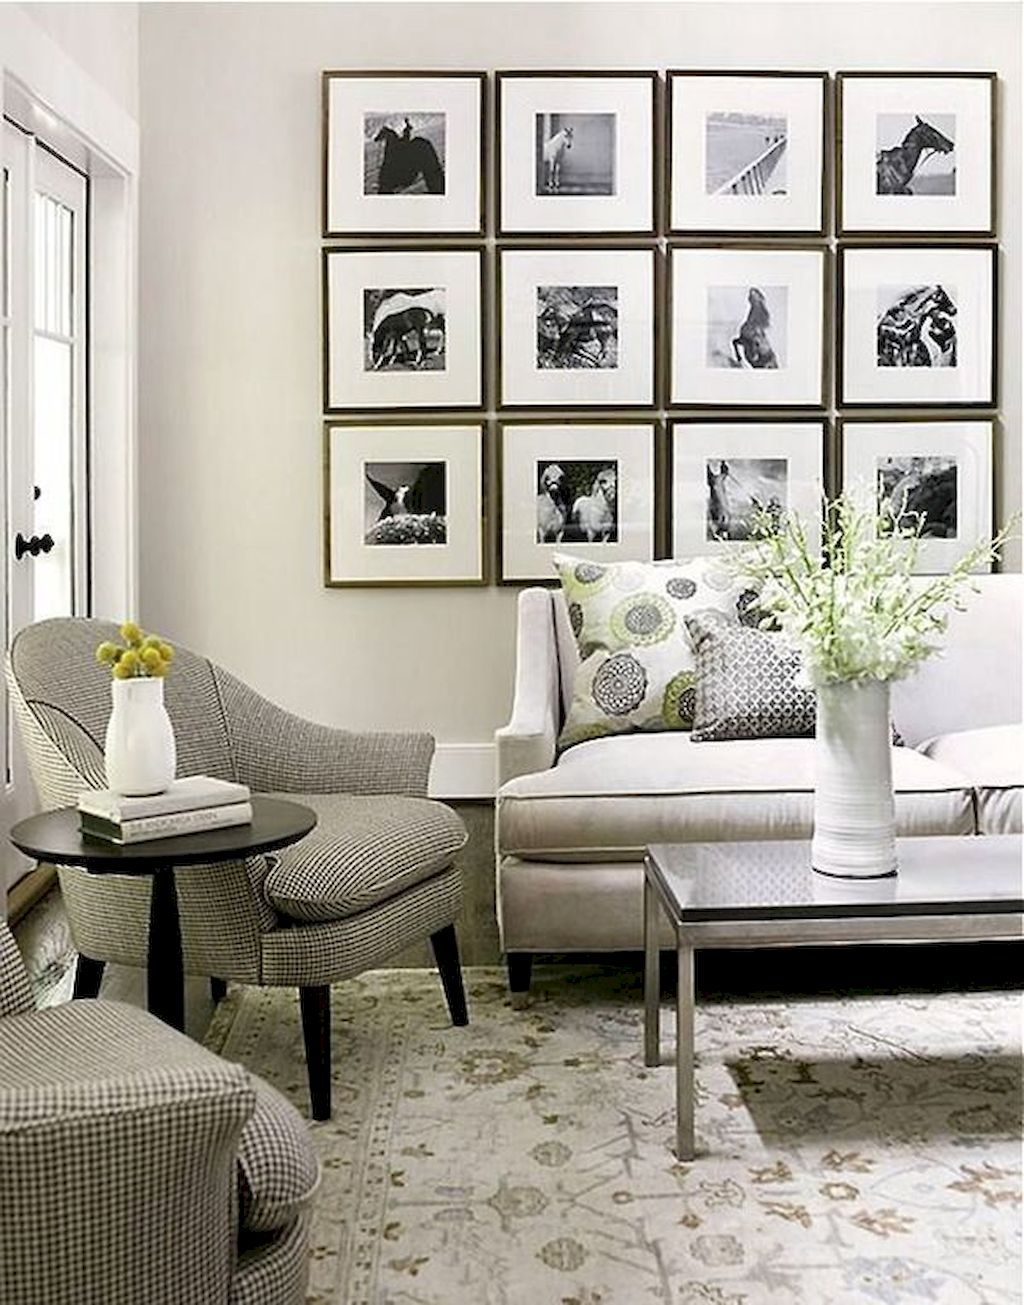 Gorgeous small living room remodel design ideas on  budgethttps paguponhome also best heaven home images in sweet diy for rh pinterest